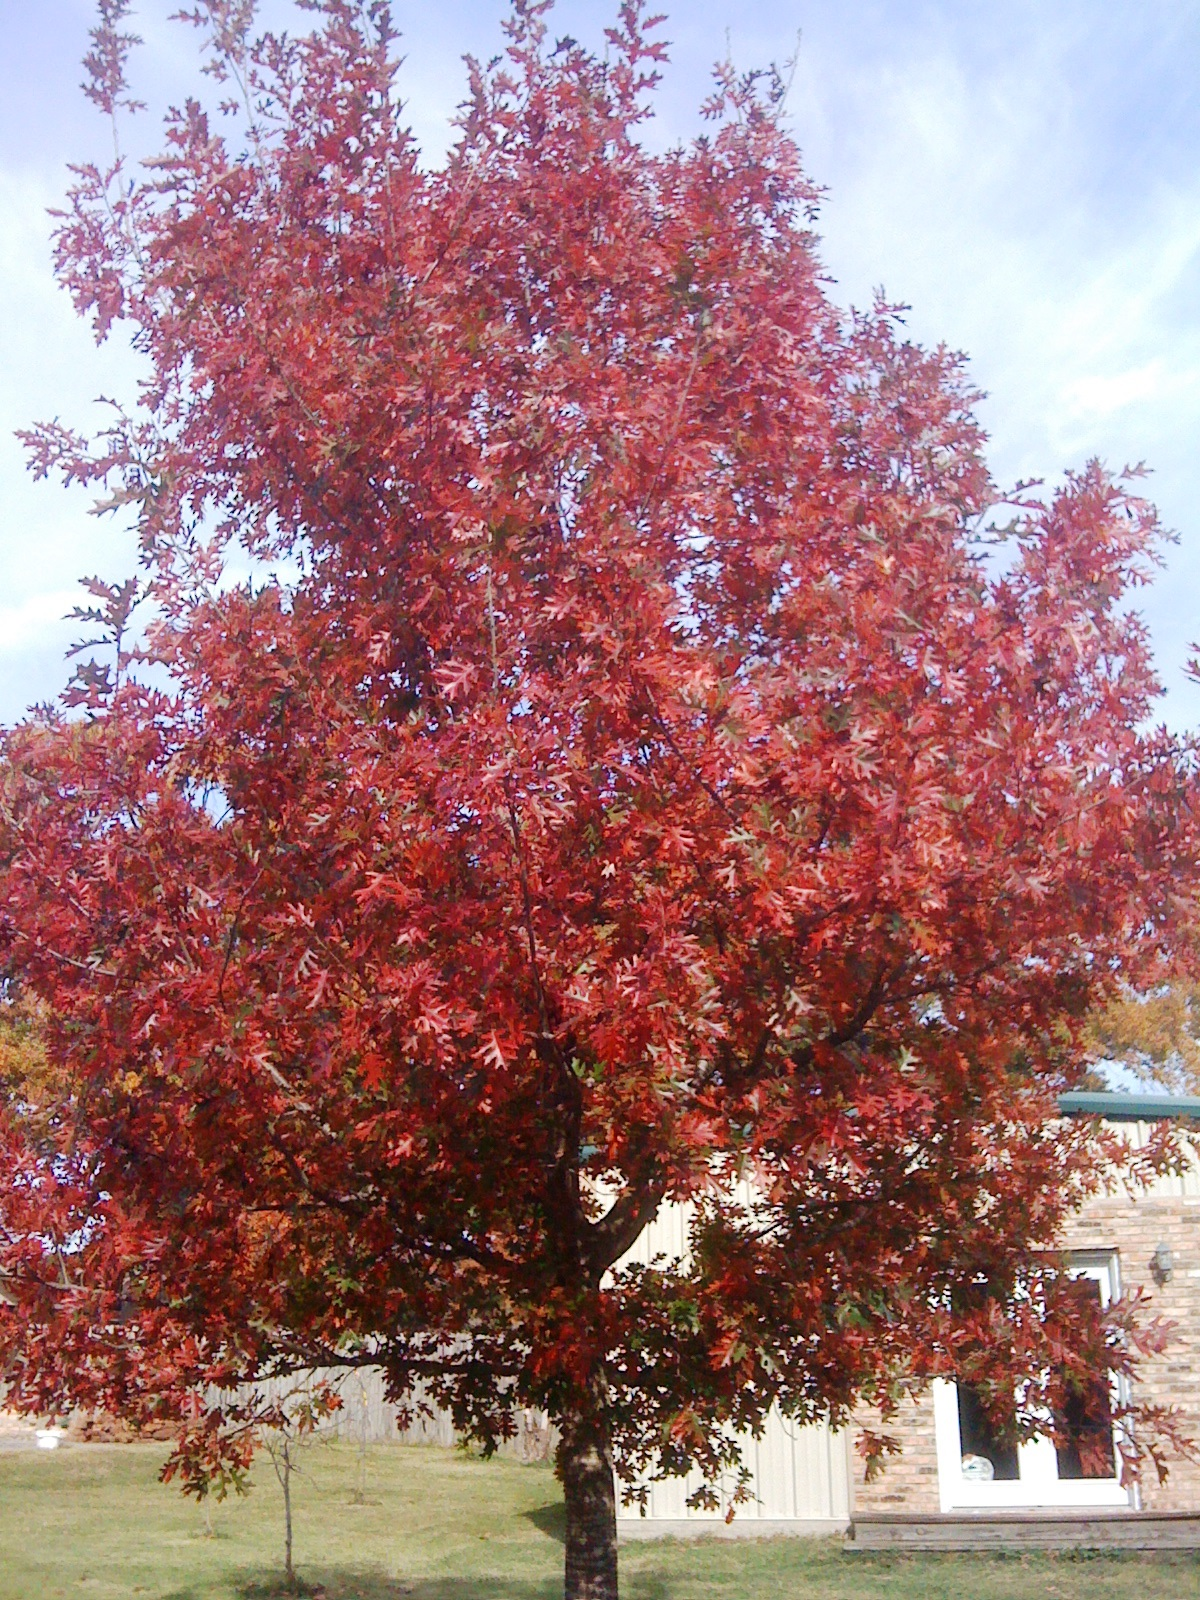 Nuttall Oak – Ornamental Plant of the Week for September 2, 2013